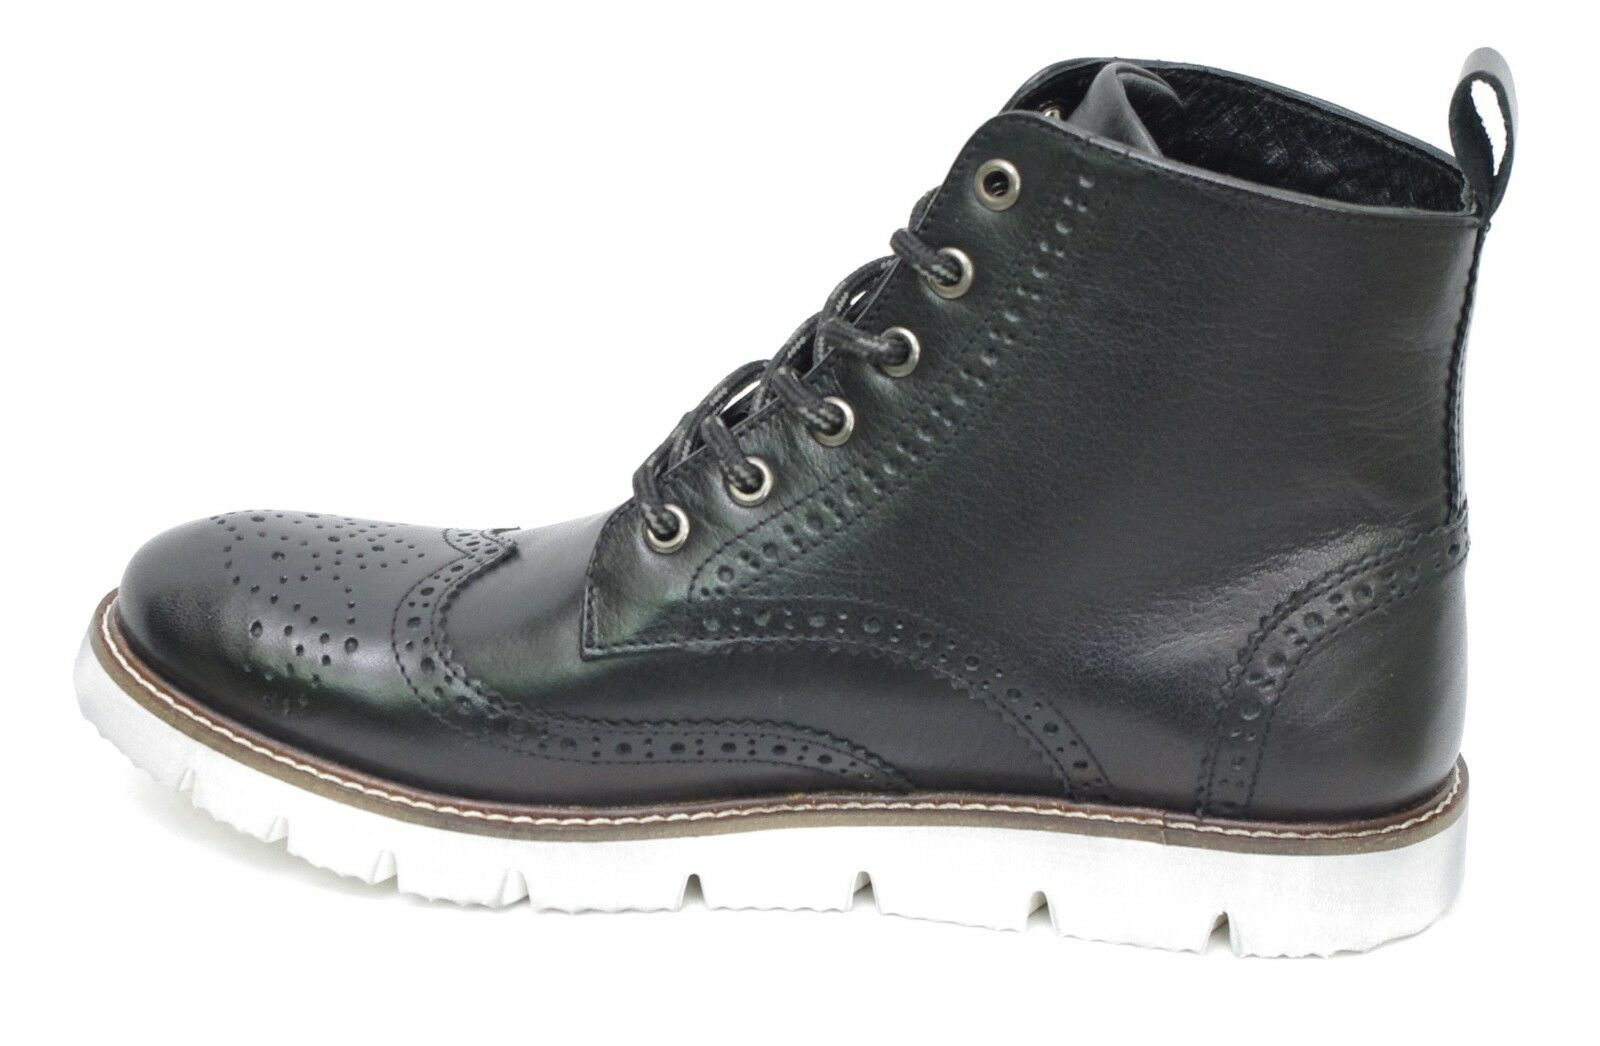 KICKERS TRICKEND noir chaussures - Stiefel cuir homme 518250 - chaussures 8 7ed518